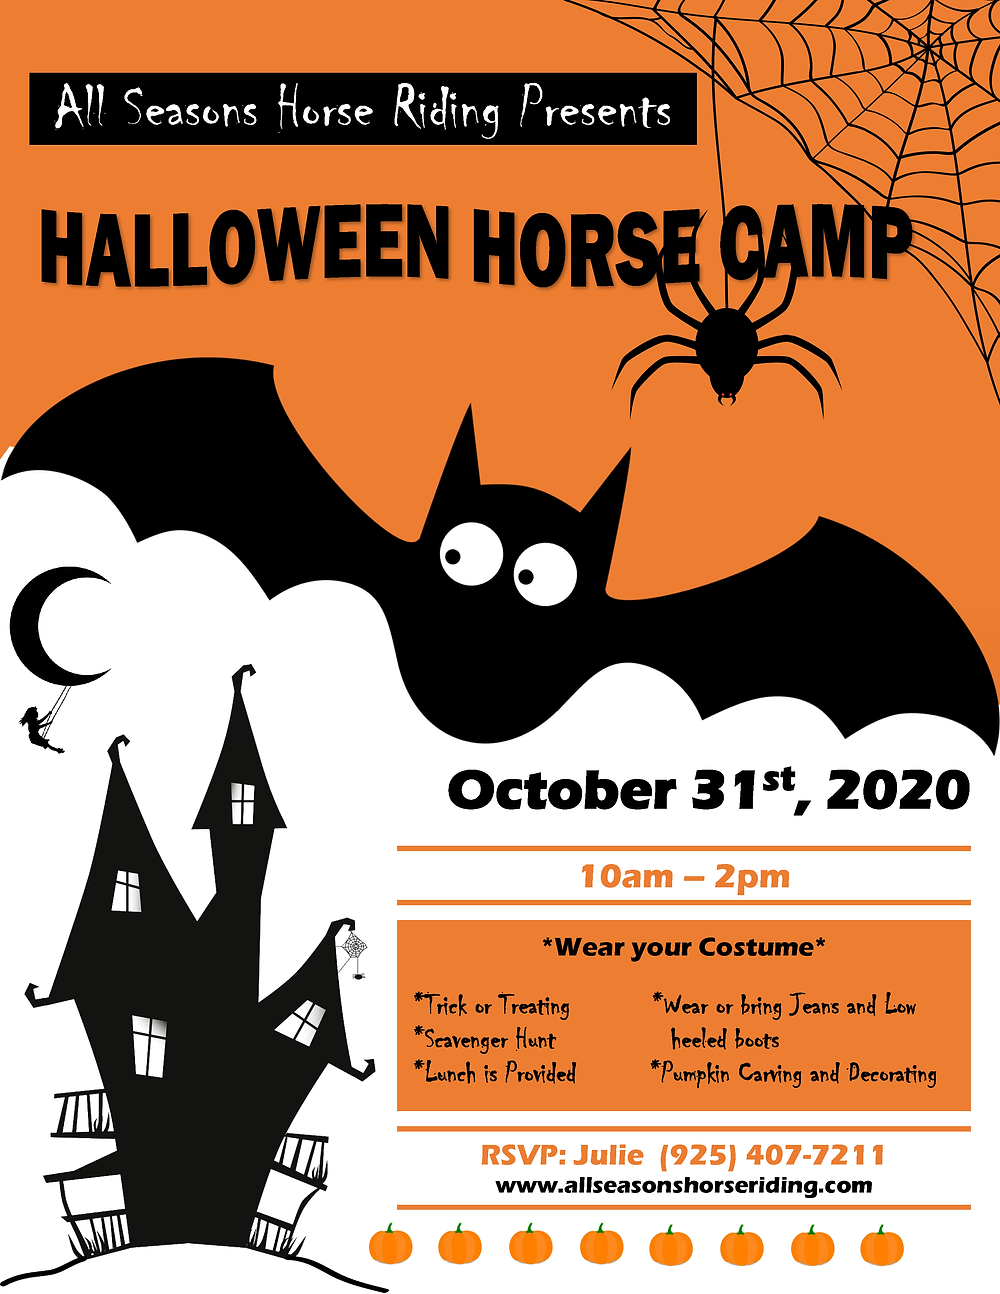 Halloween Horse Camp 2020